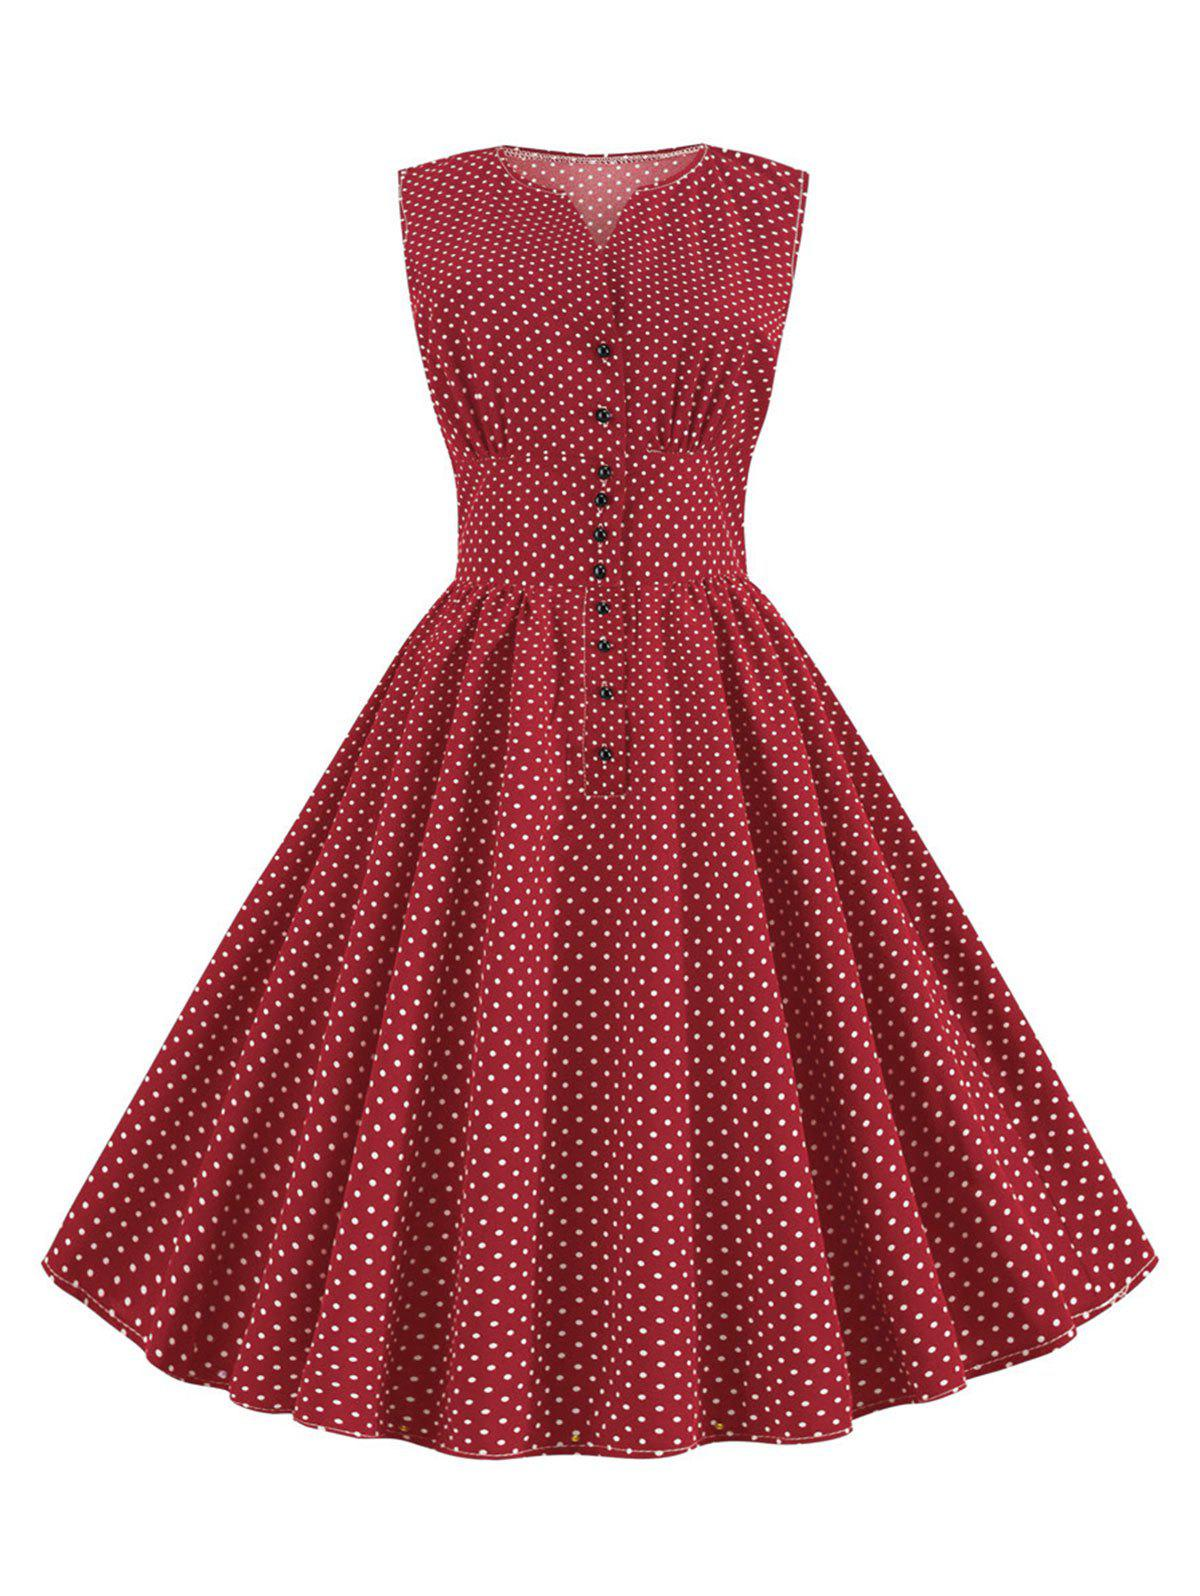 Affordable Ditsy Polka Dot Button Front A Line Retro Dress